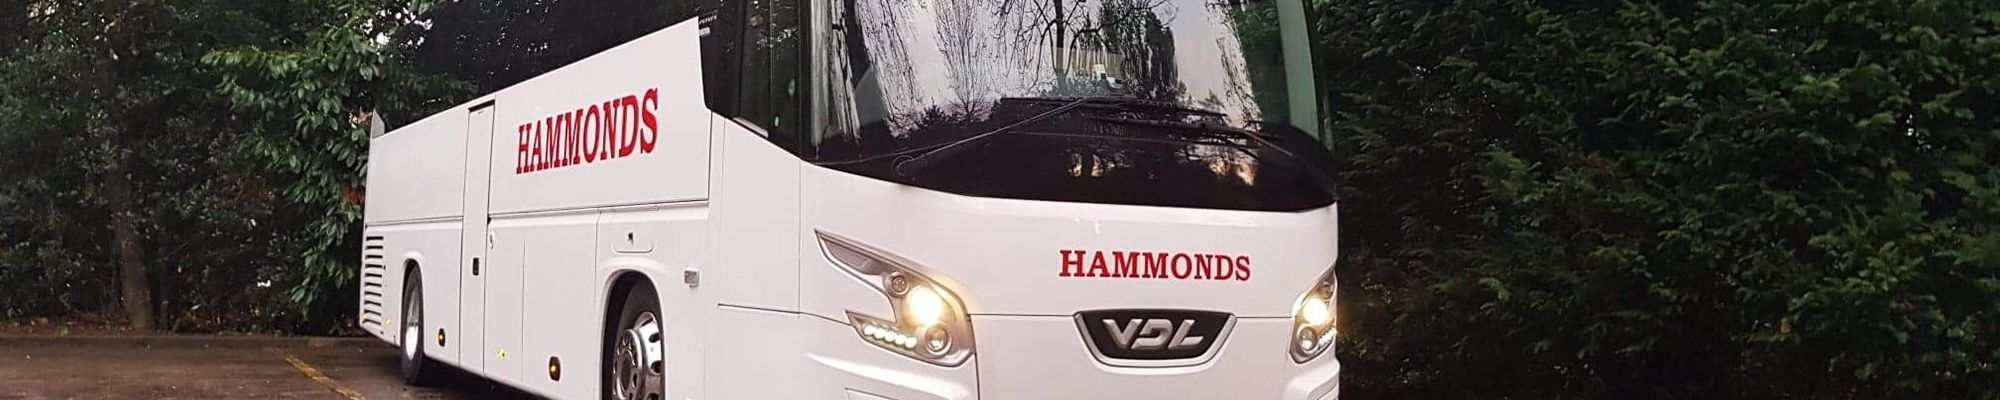 Contact Hammonds Coaches Ltd